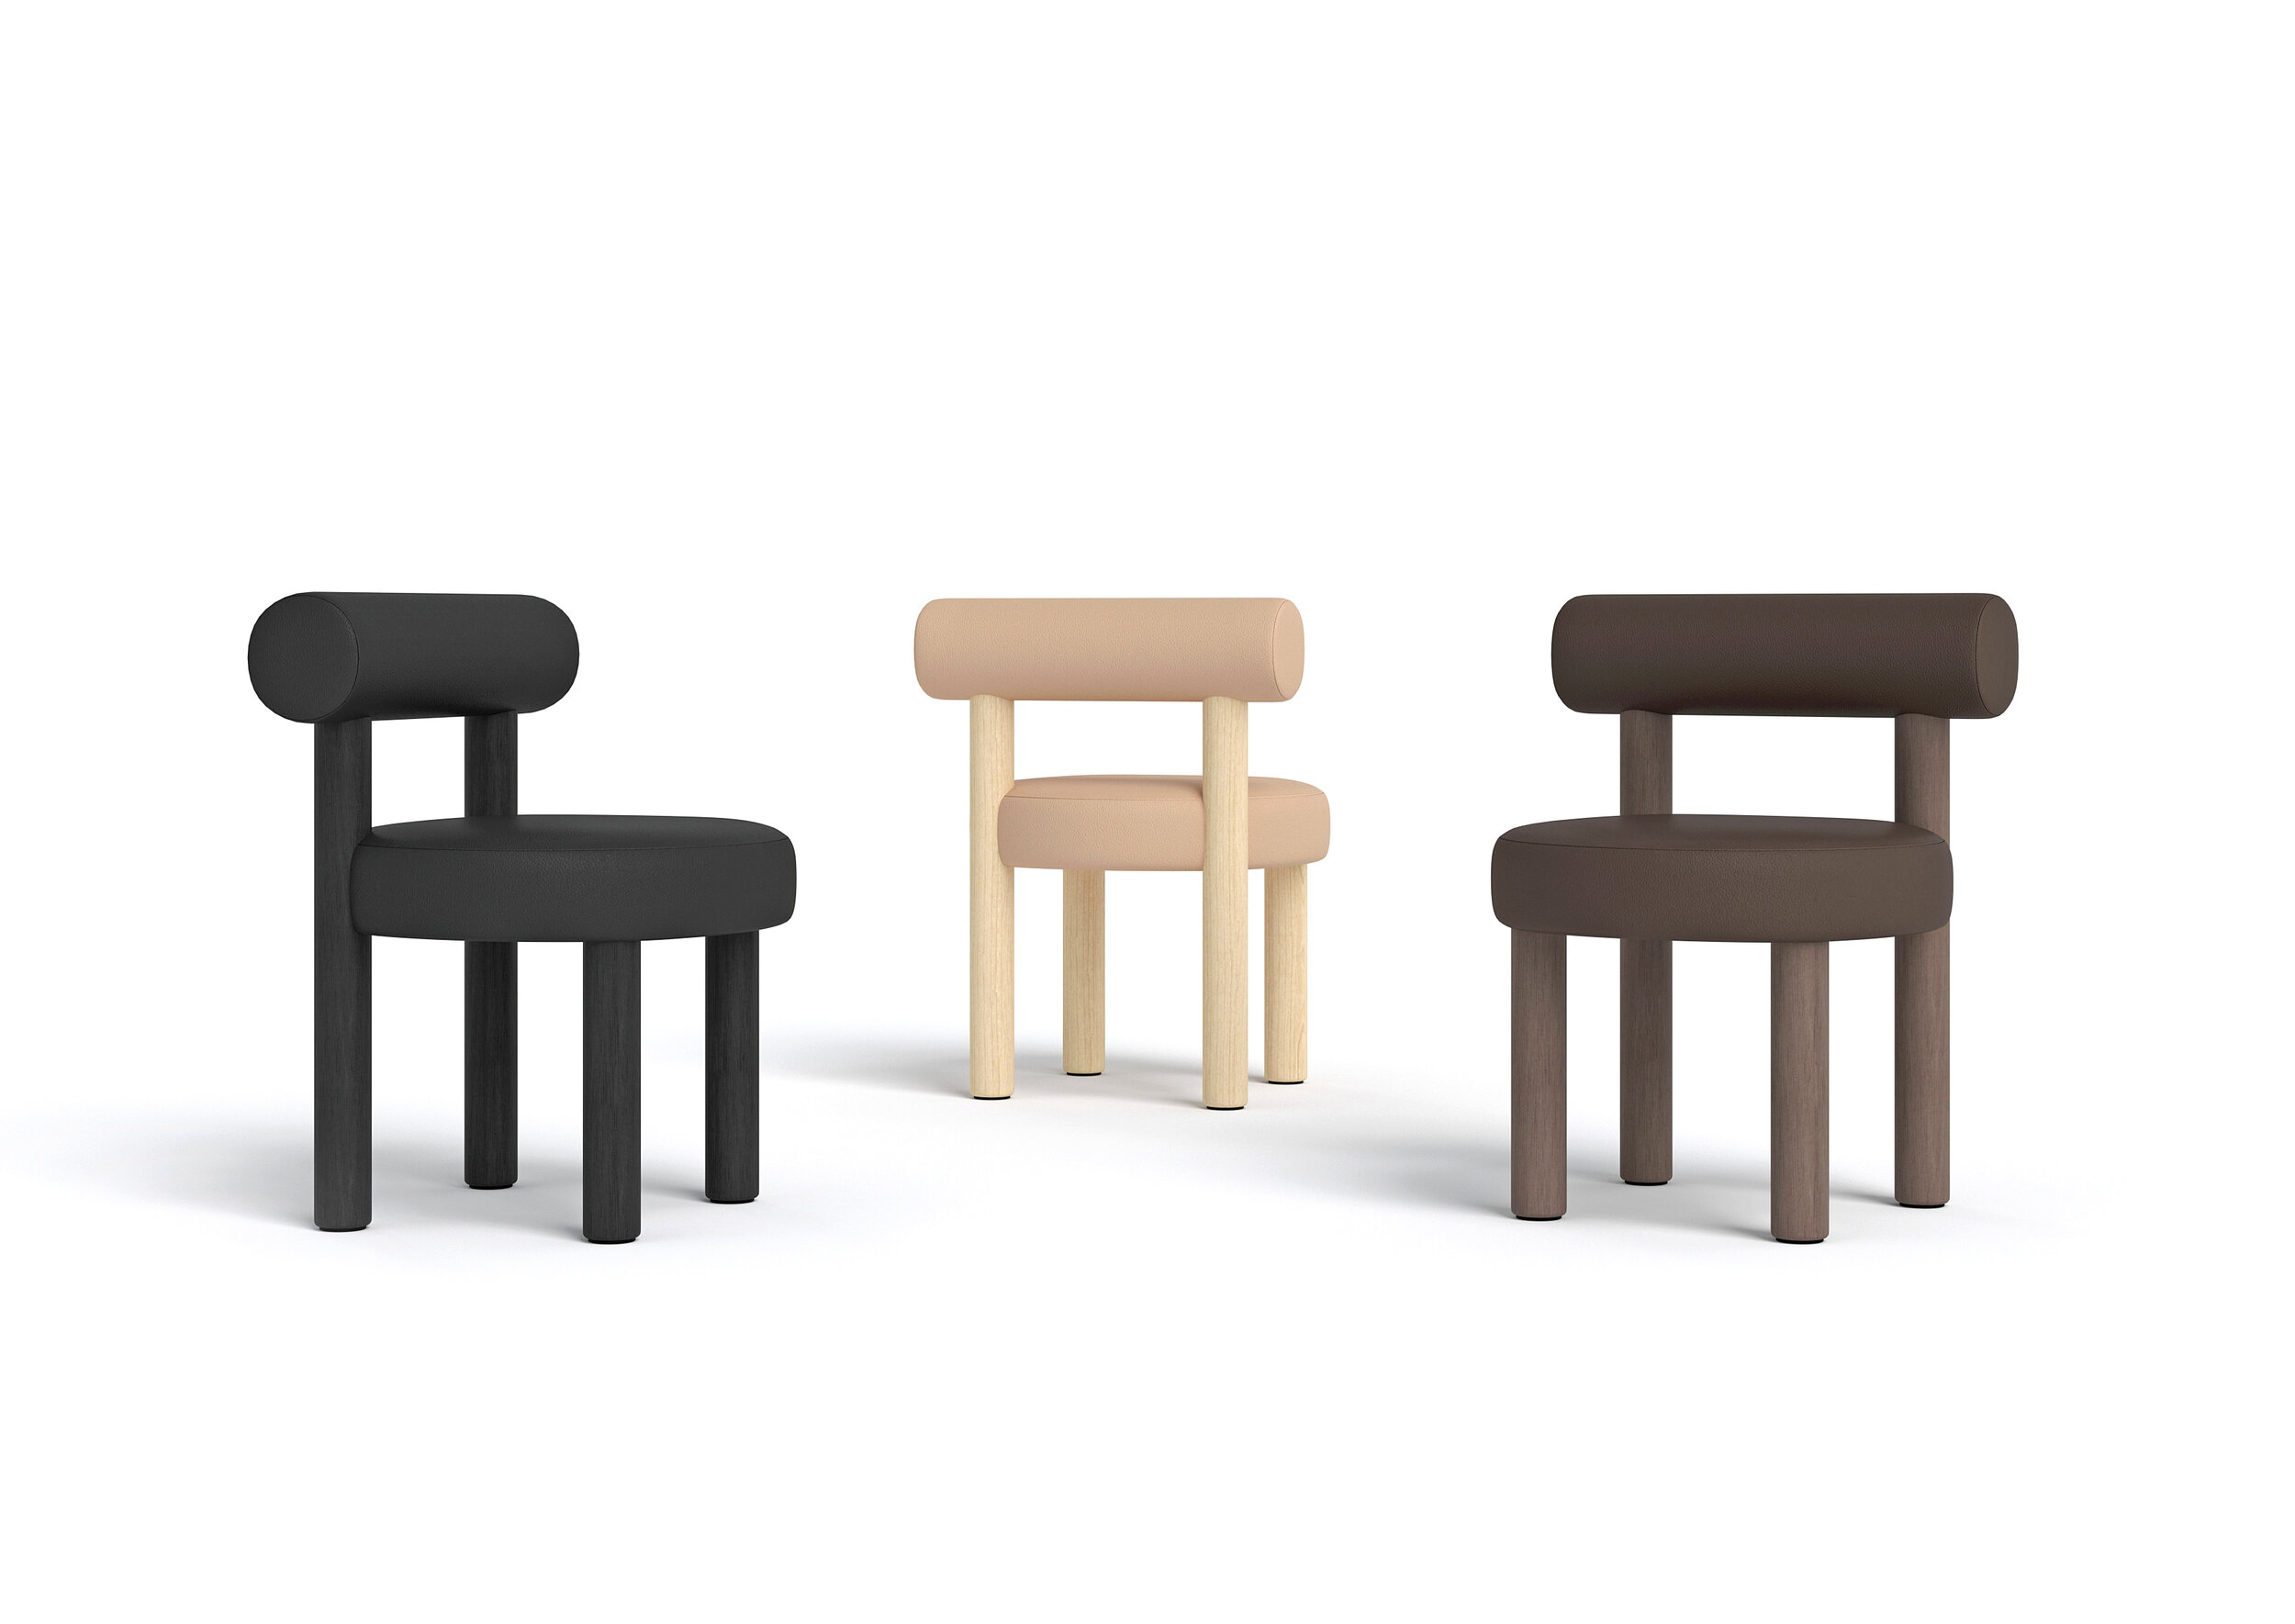 """Chair Gropius CS2 - New NOOM furniture collection is dedicated to the 100th anniversary of the founding of the Bauhaus School in Germany. Ideas of functionalism and conciseness, the combination of craft and art, buildings and objects formed by a composition of simple geometric shapes, are still relevant.   NOOM furniture is a tribute to the great thinkers who formed the modernist principles and brought them to life. The designer has """"gathered"""" the shape of this chair from the cylinders.  All products in the collection are called by names of famous modernist artists and architects.   Matter of Stuff"""